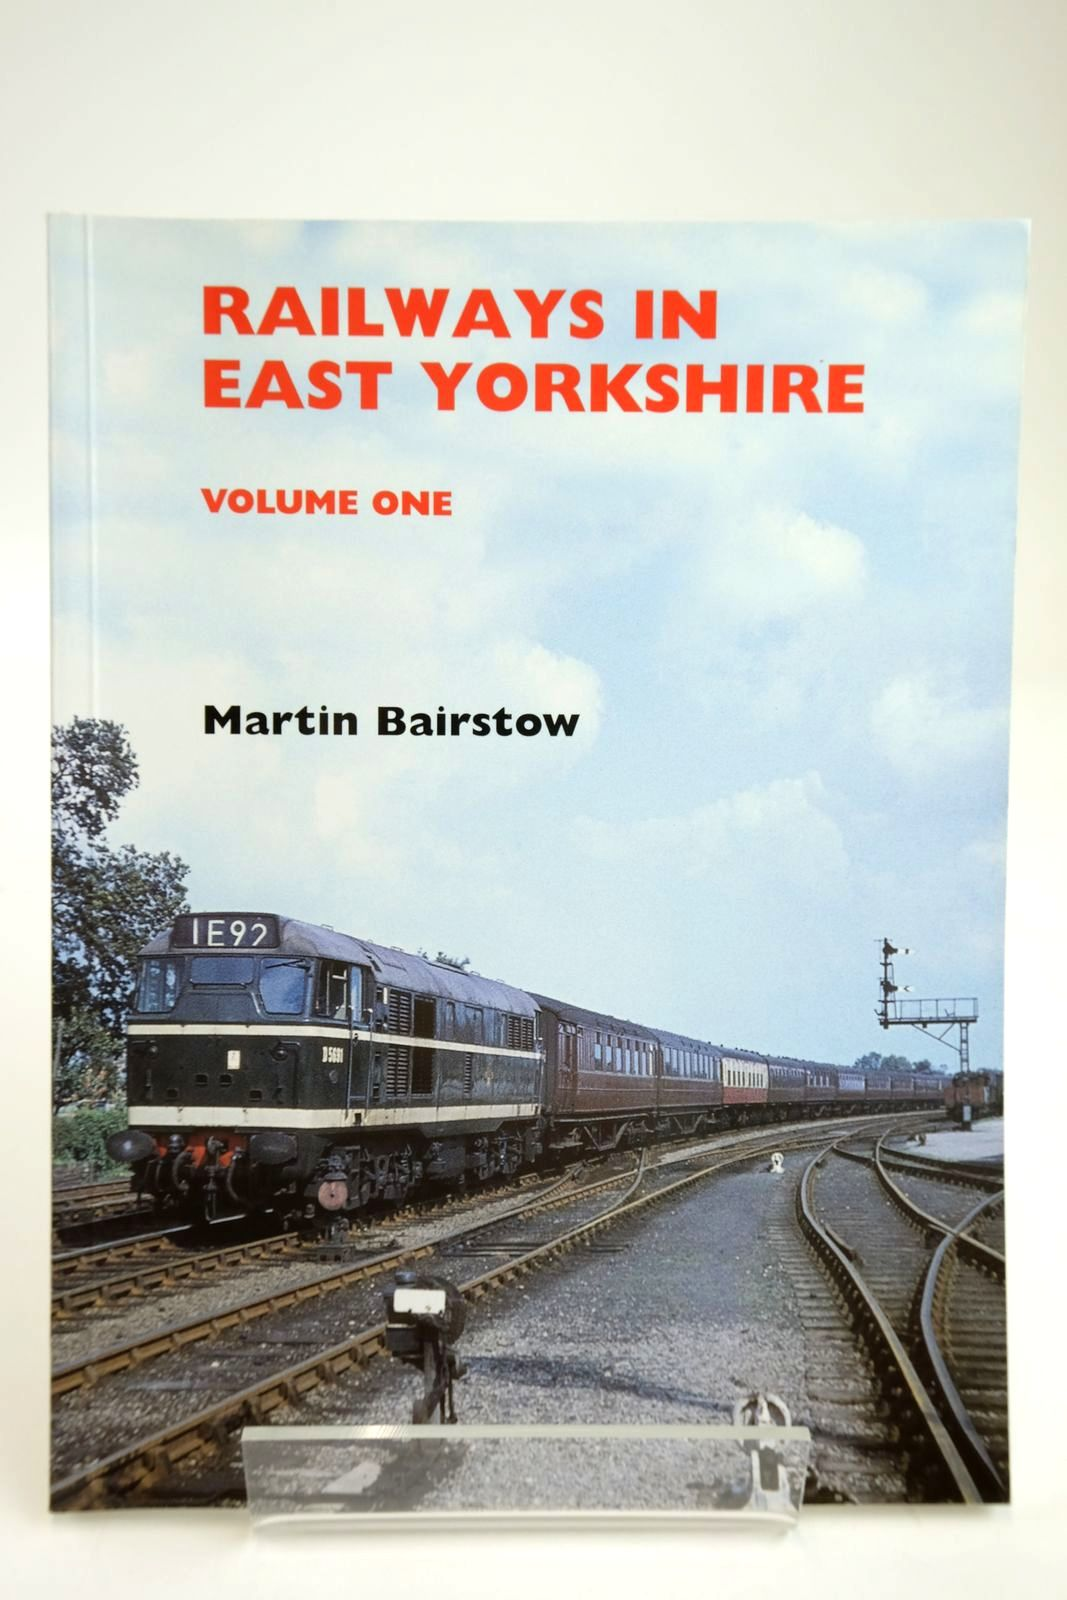 Photo of RAILWAYS IN EAST YORKSHIRE VOLUME ONE written by Bairstow, Martin published by Martin Bairstow (STOCK CODE: 2133704)  for sale by Stella & Rose's Books